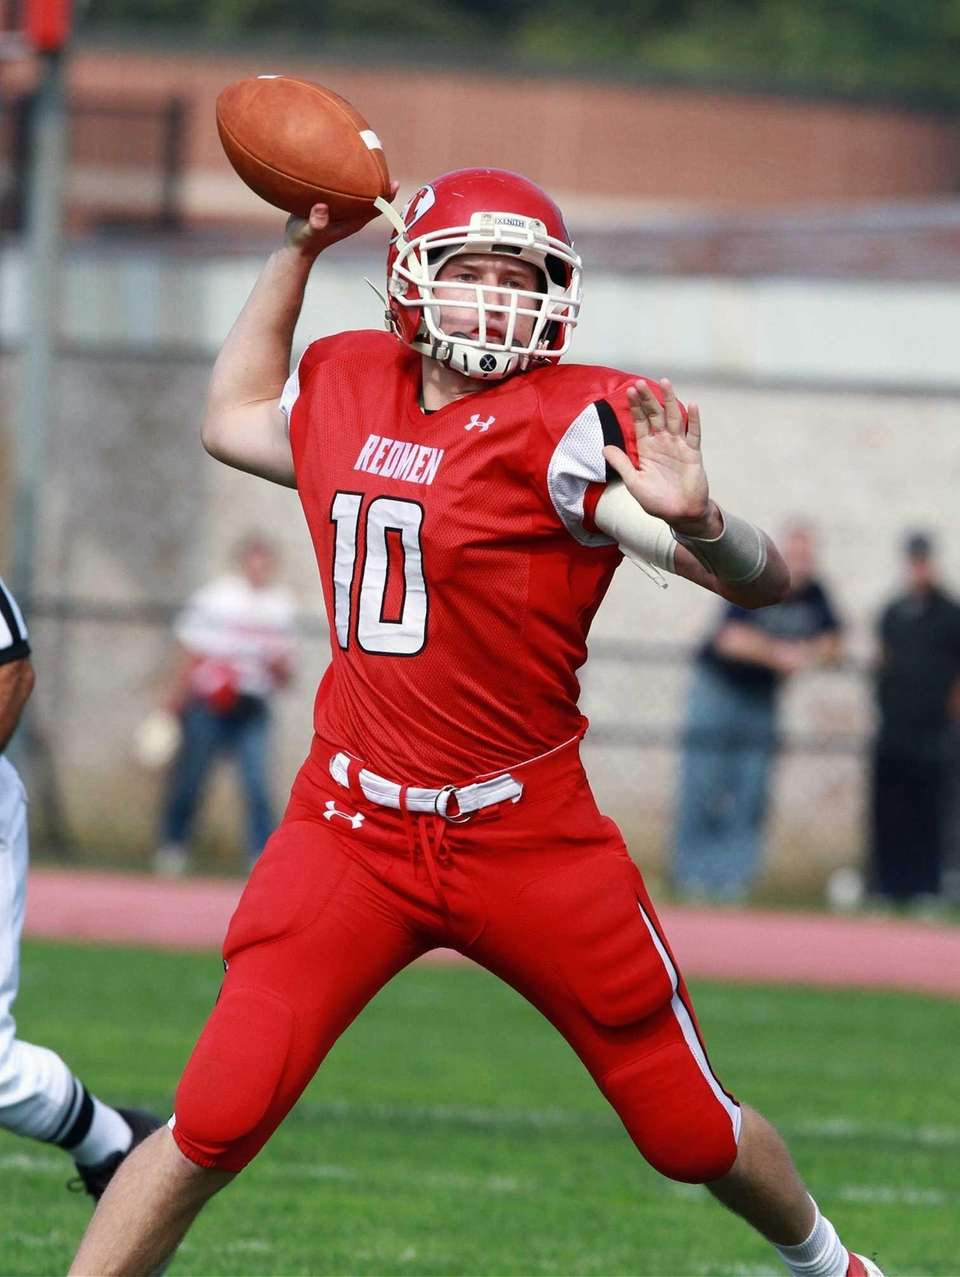 East Islip's Casey Nolan throws down field during